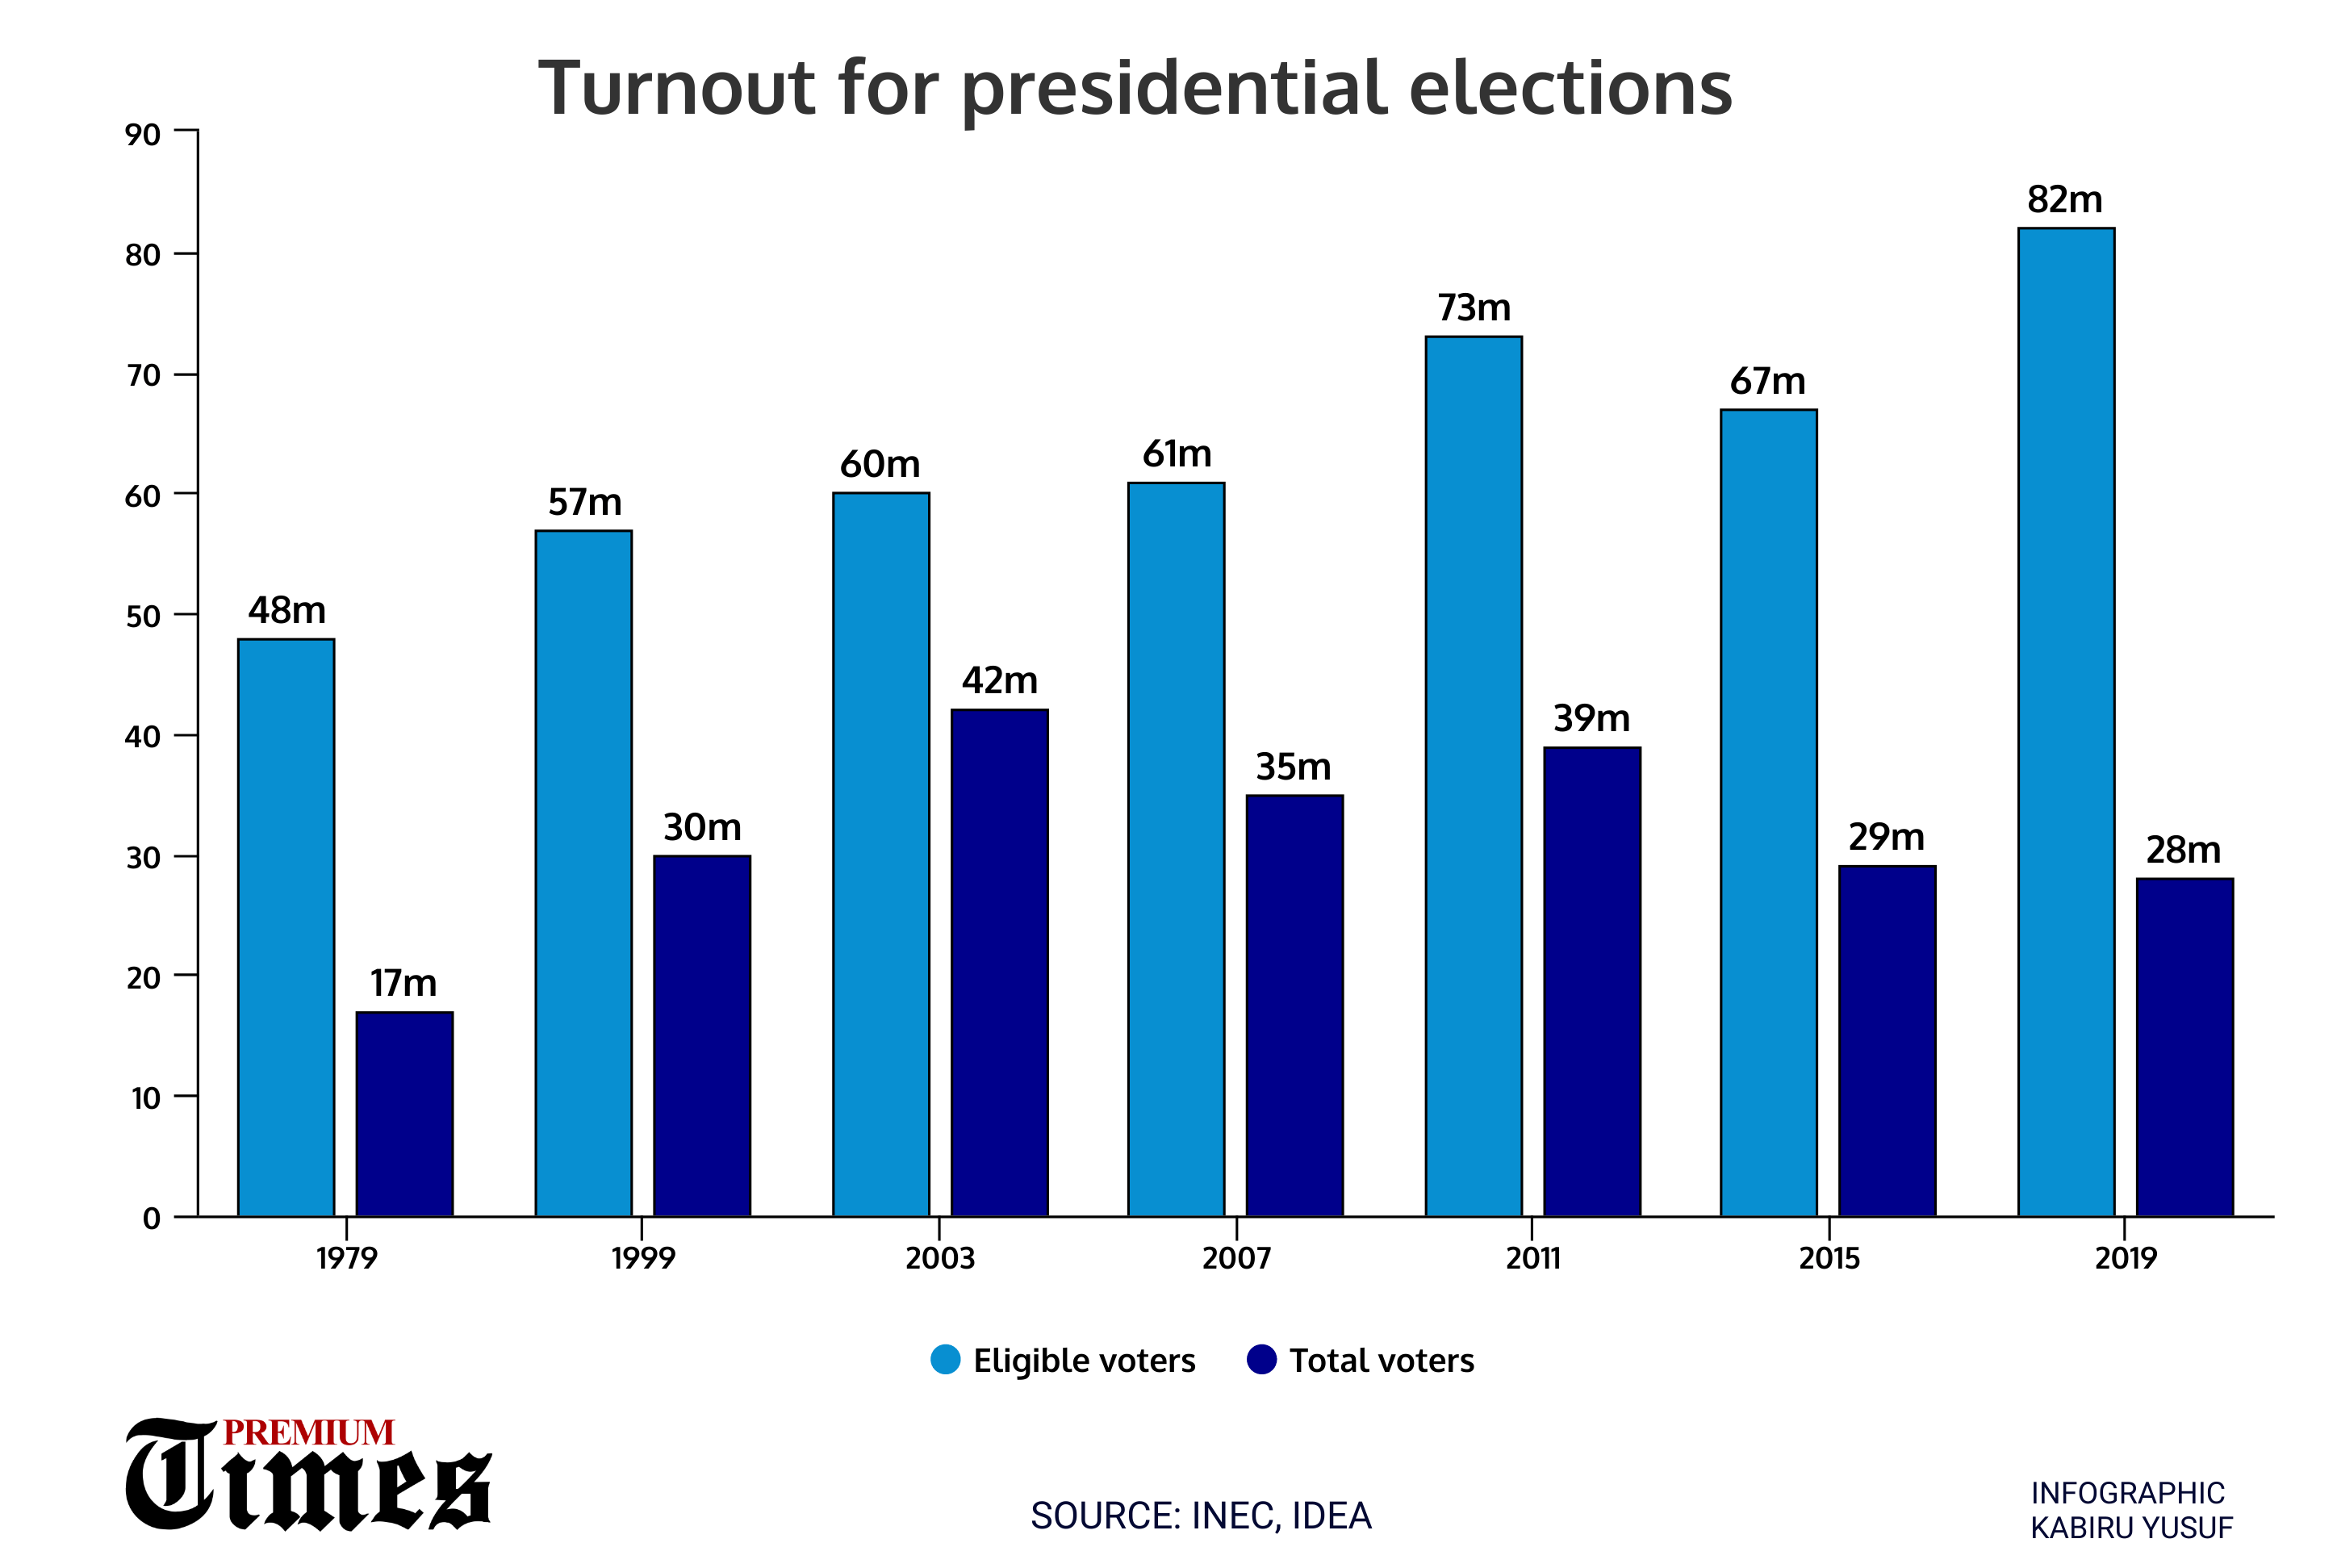 Eligible voters against those who turned out